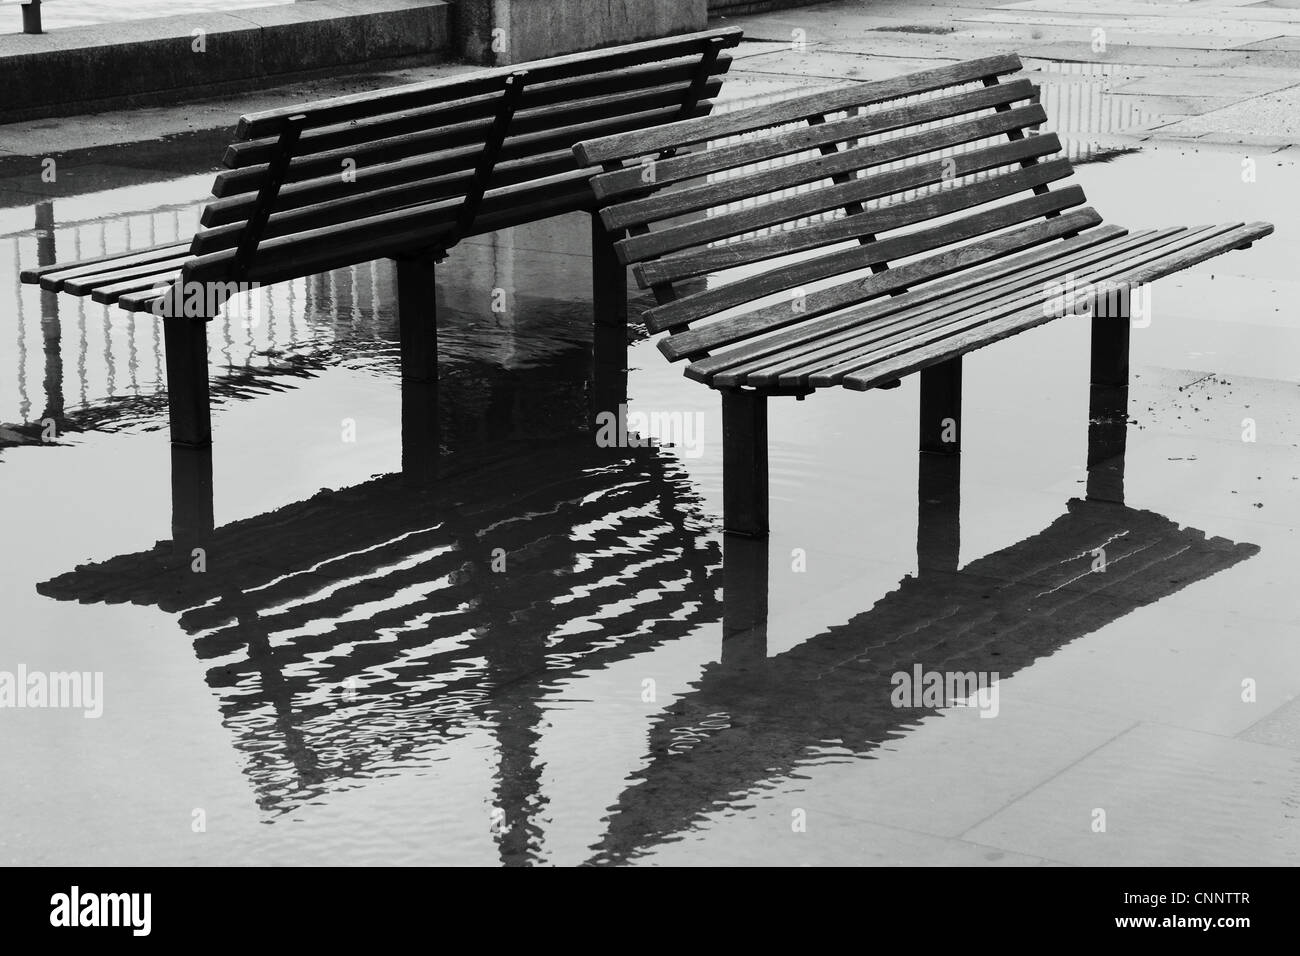 Benches and puddles, London - Stock Image